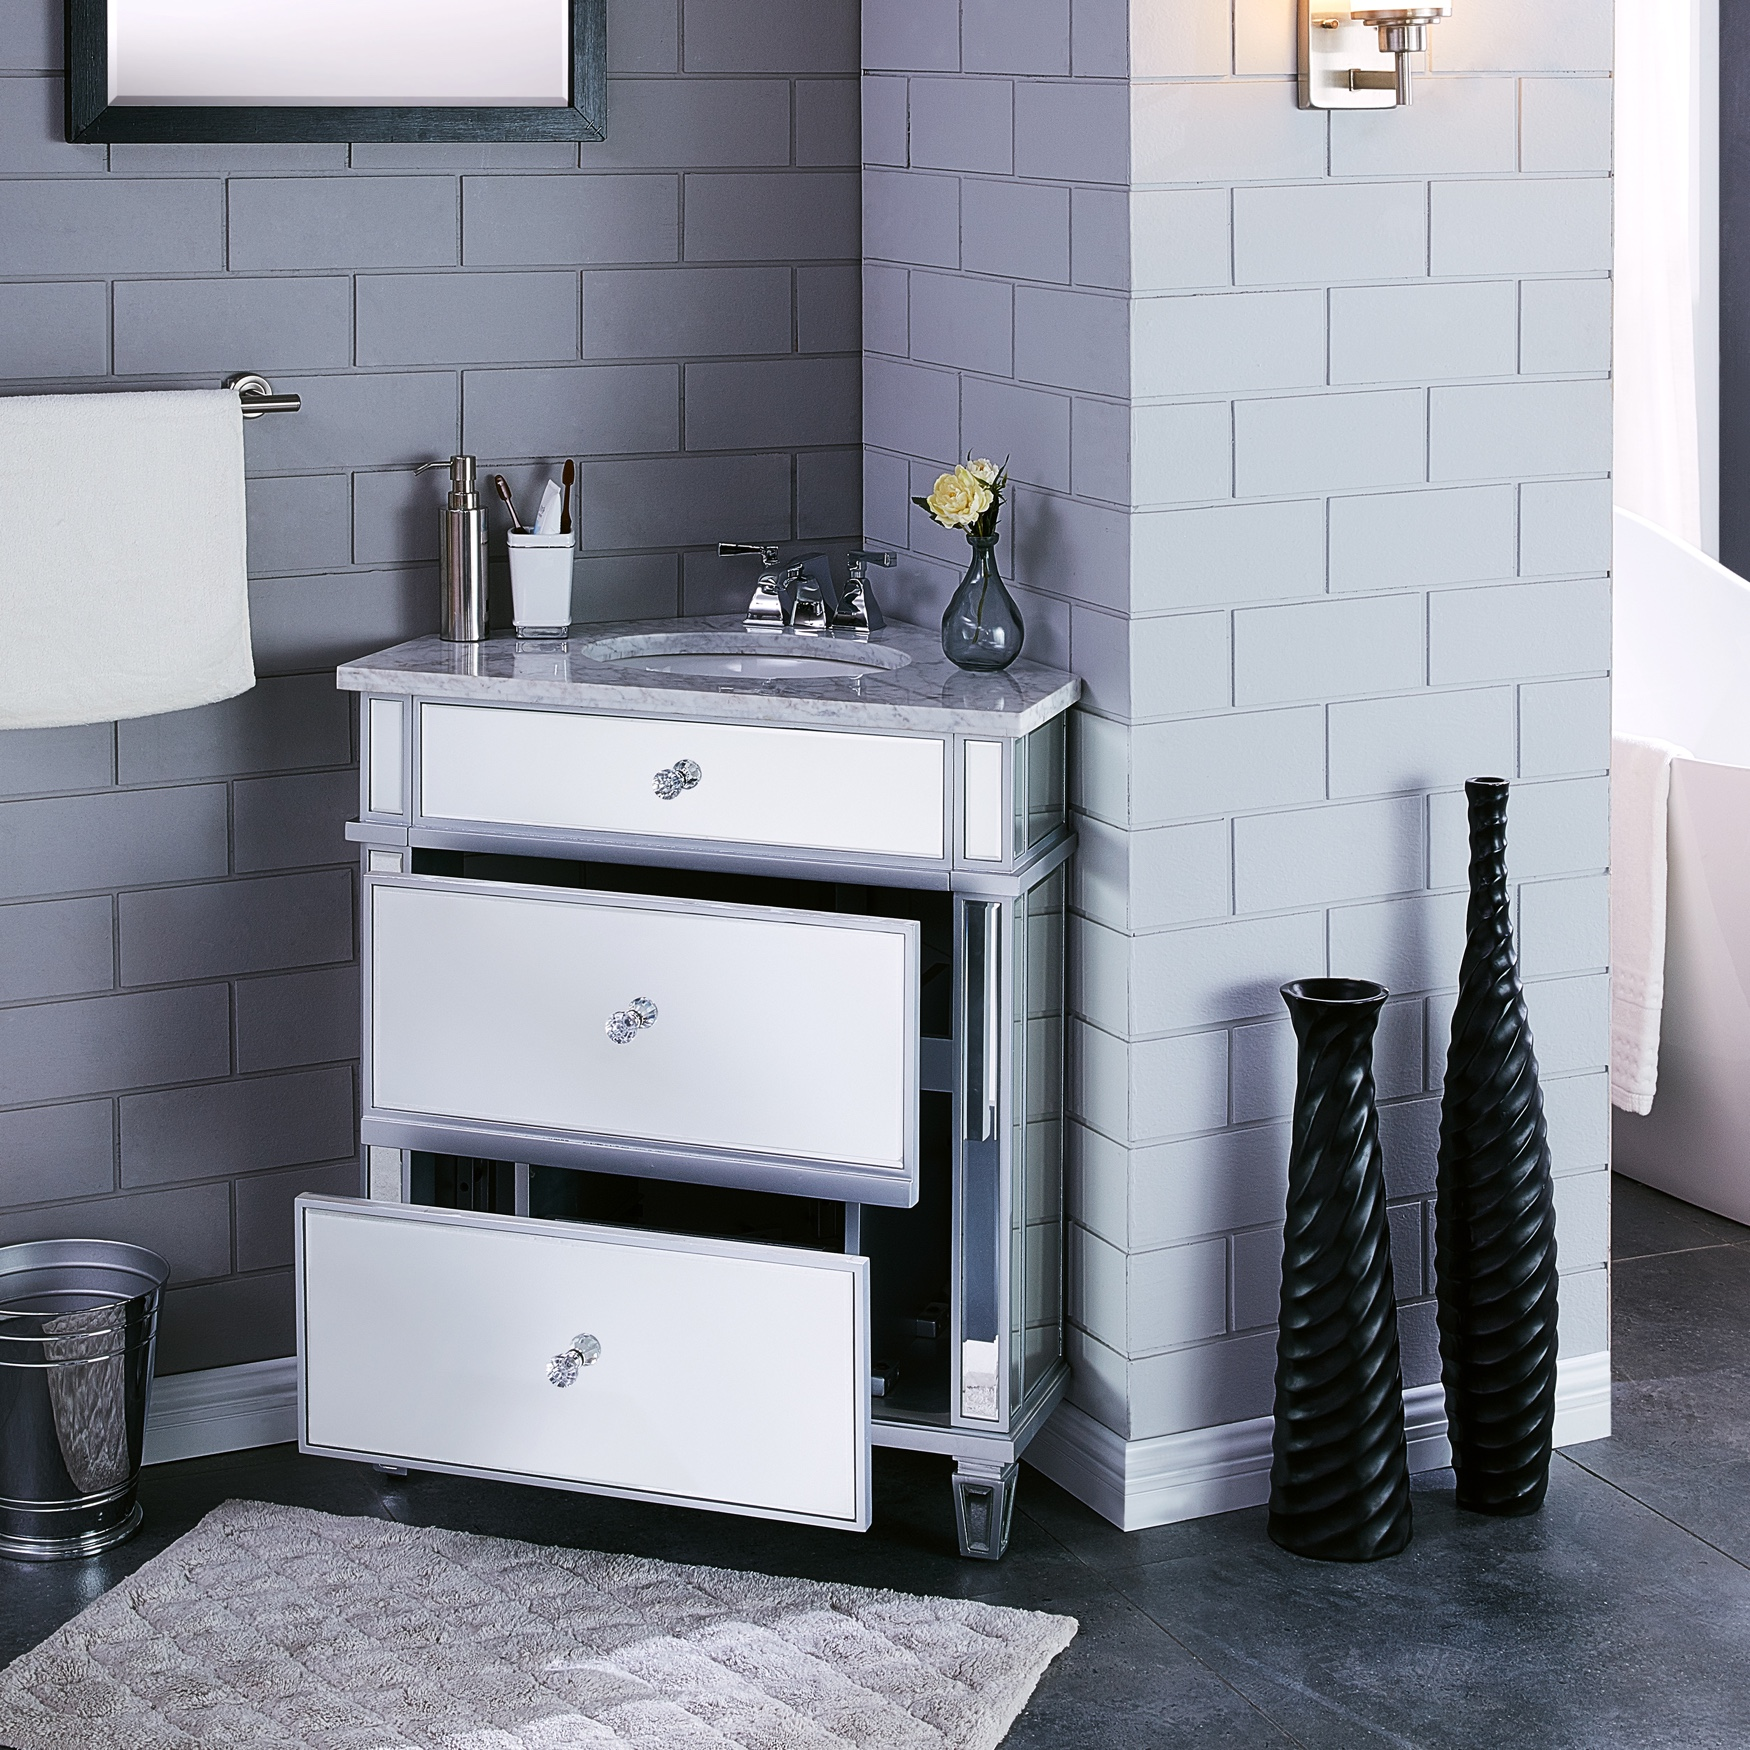 Abbington Mirrored Corner Bathroom Vanity Sink with Drawers, GRAY